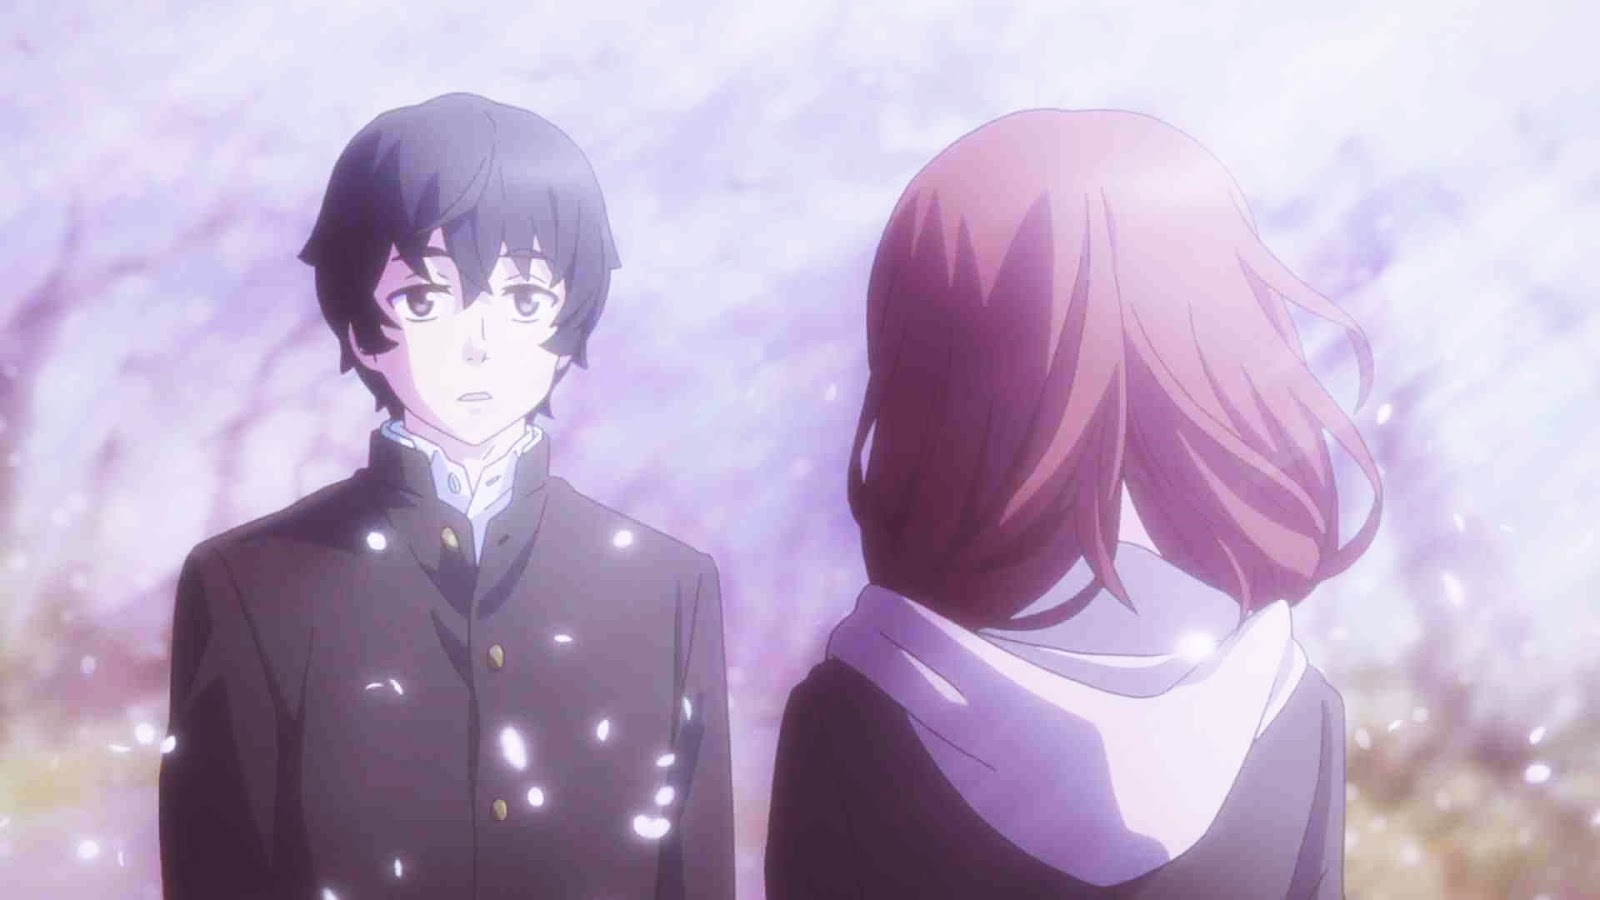 How The Anime Was Presented Per Episode Its Very Calm And Pleasing Not Pretending To Be A Romance Ish That Needs Lots Of Drama